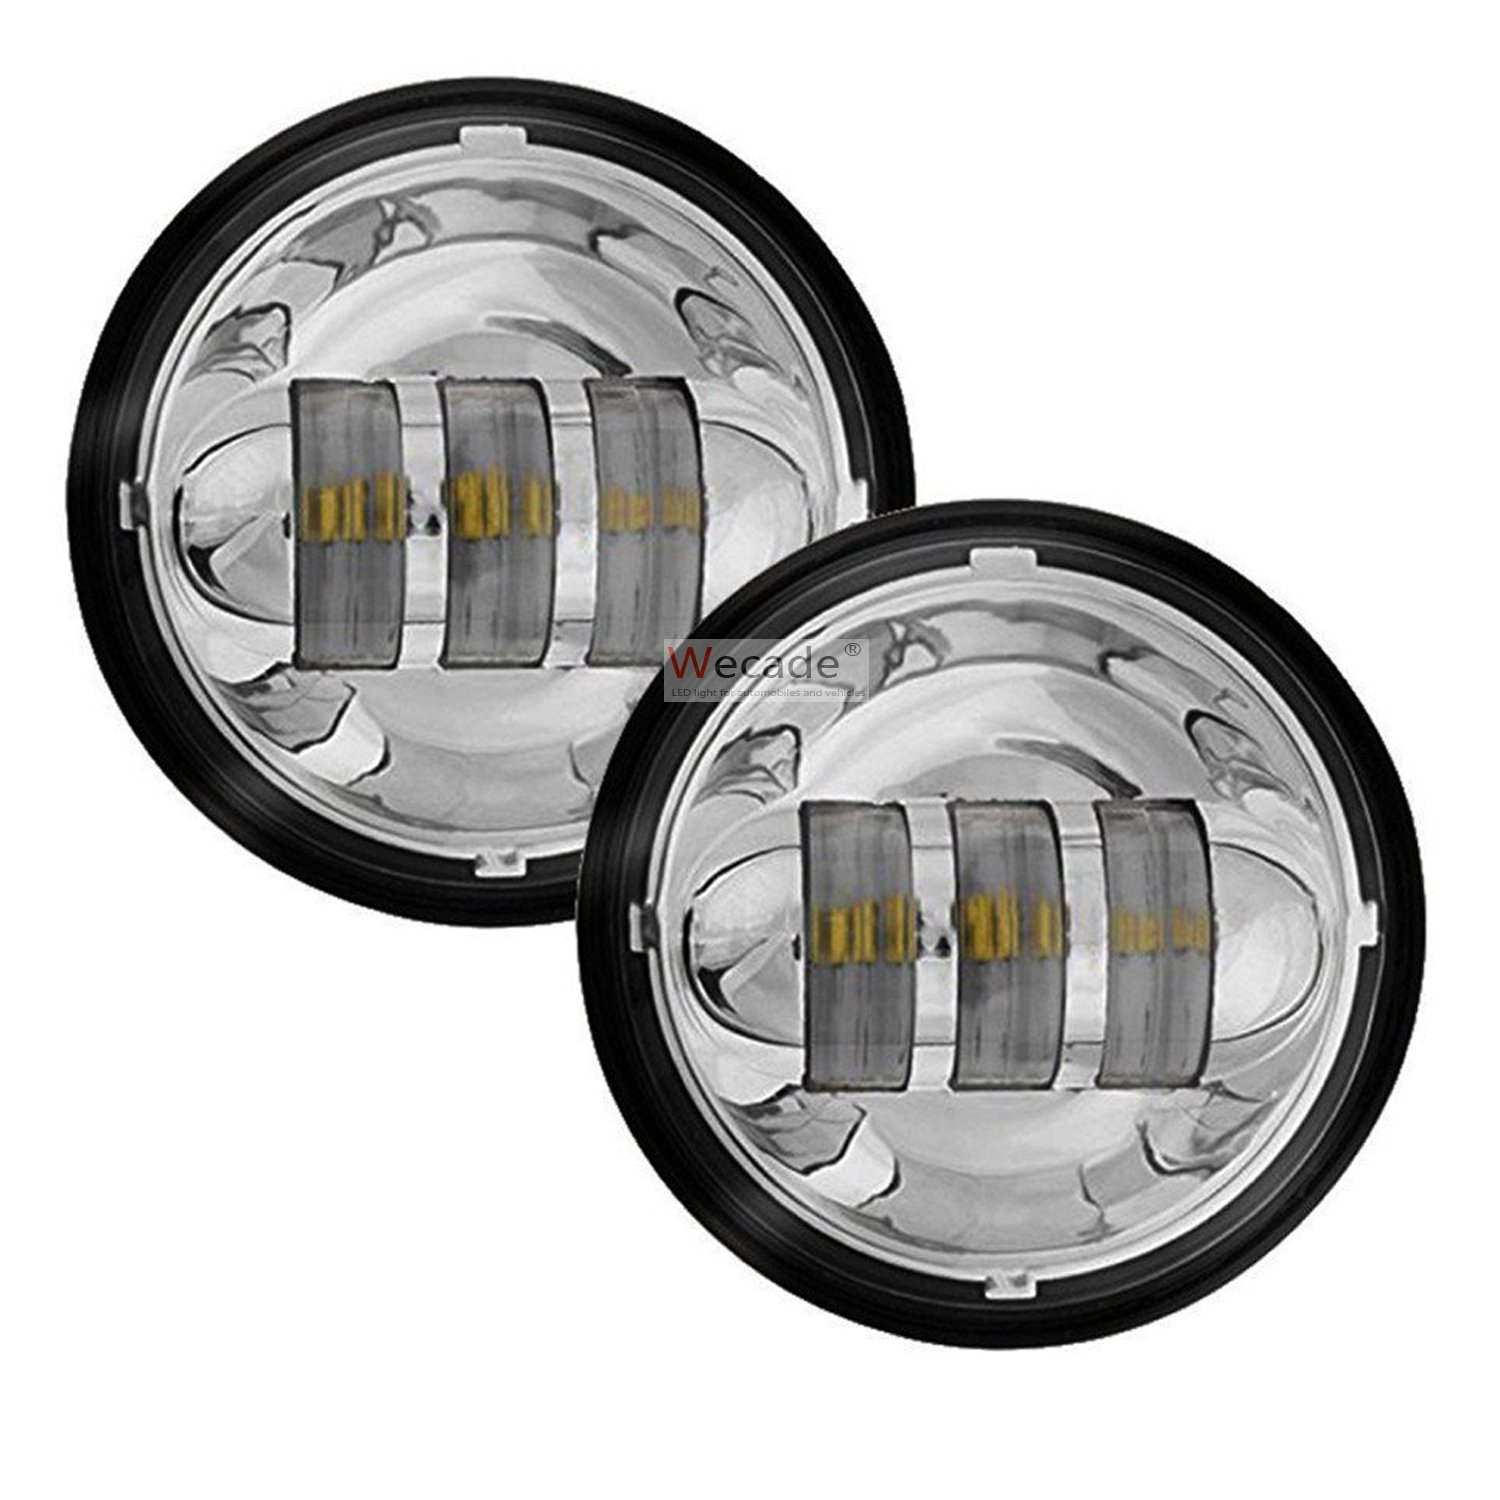 Wecade 4-1/2' 4.5inch LED Passing Light for Harley Davidson Fog Lamps Auxiliary Light Bulb Motorcycle Daymaker Projector Spot Driving Lamp Headlight (Chrome)